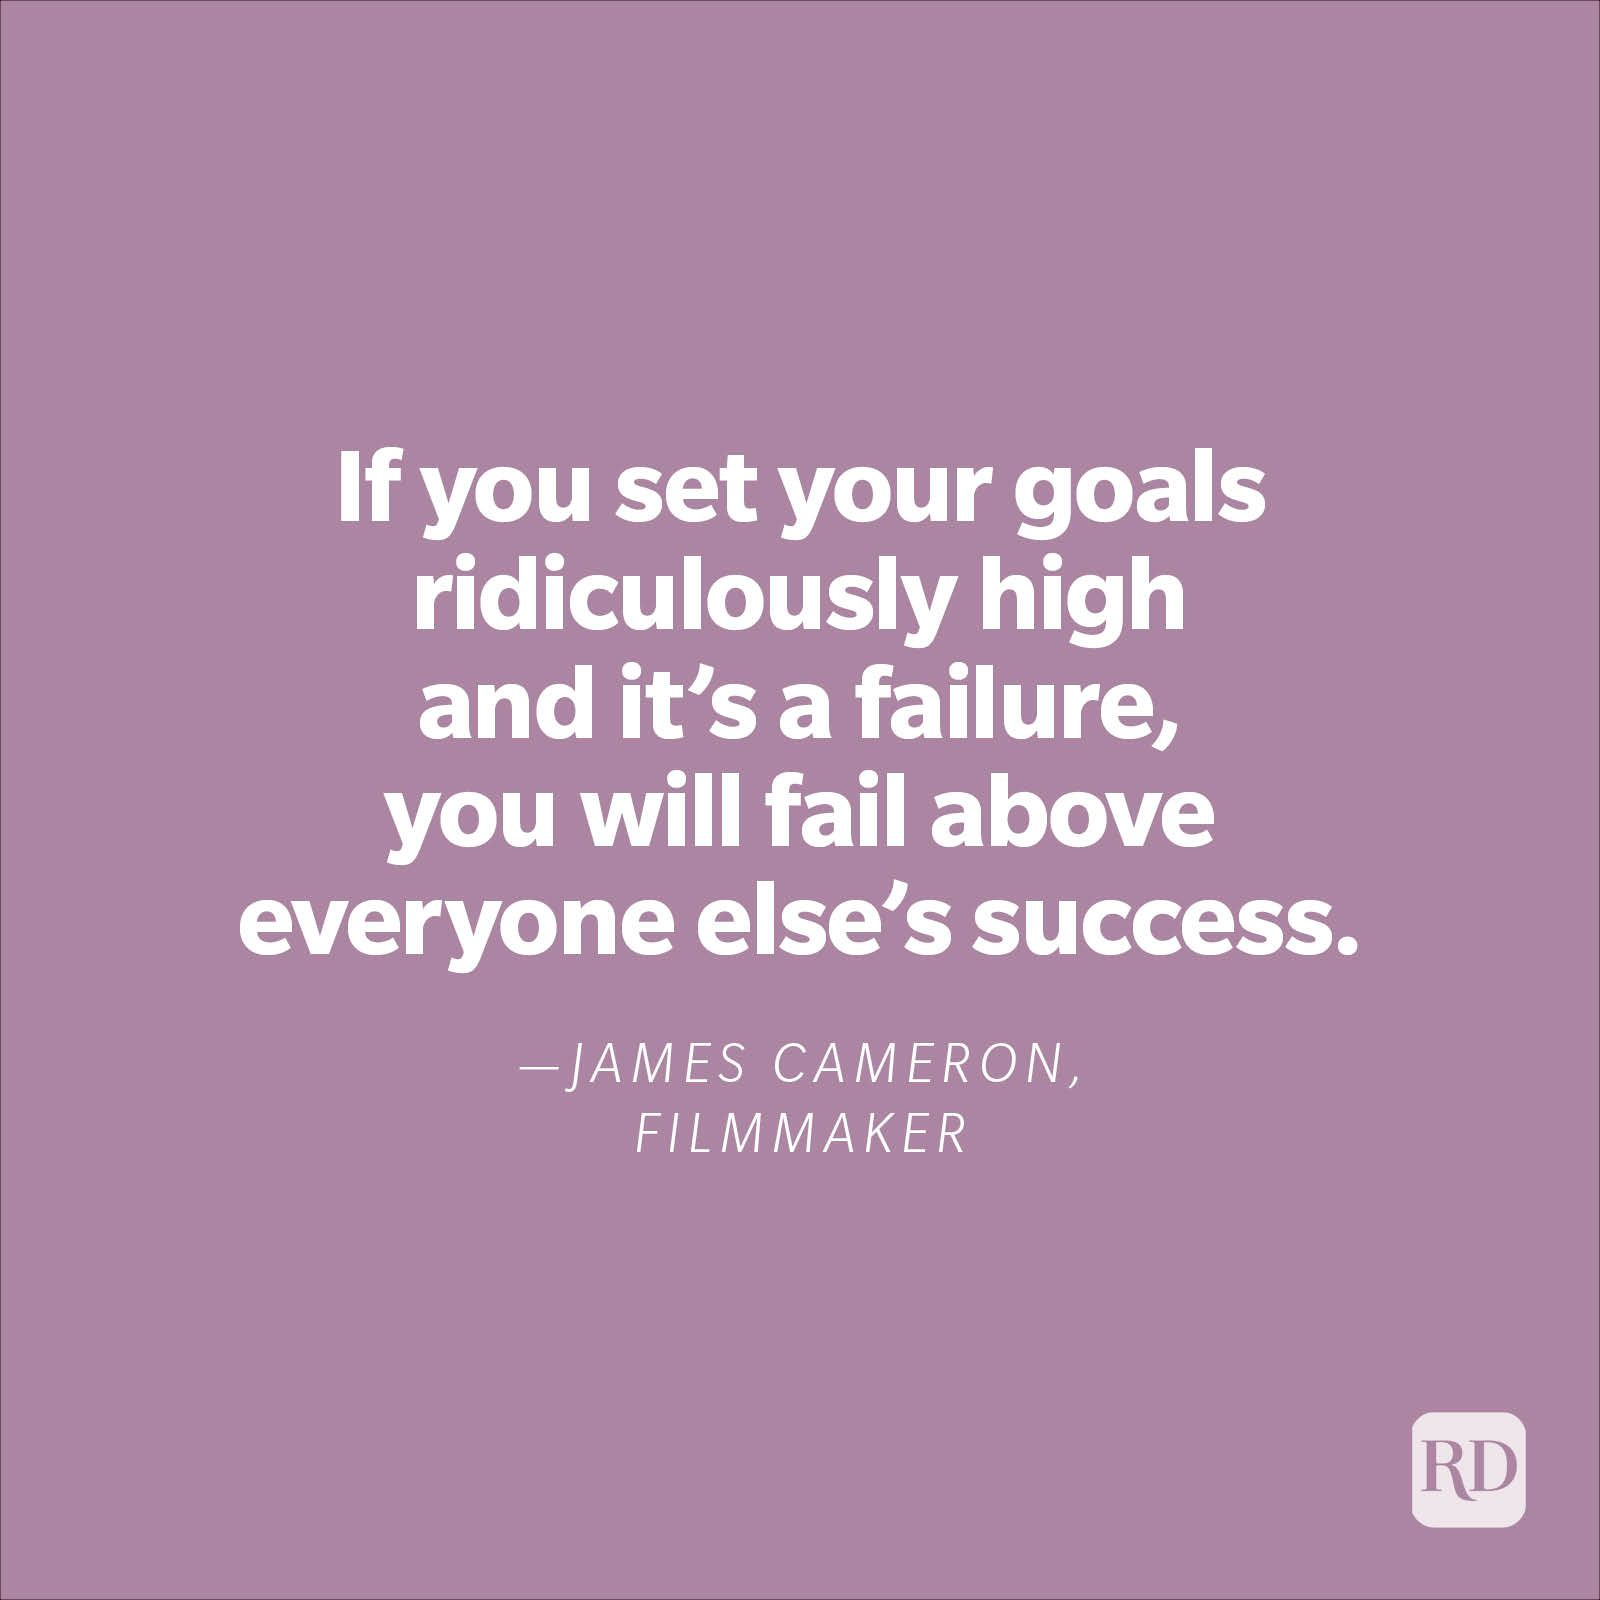 """""""If you set your goals ridiculously high and it's a failure, you will fail above everyone else's success."""" —James Cameron, filmmaker"""